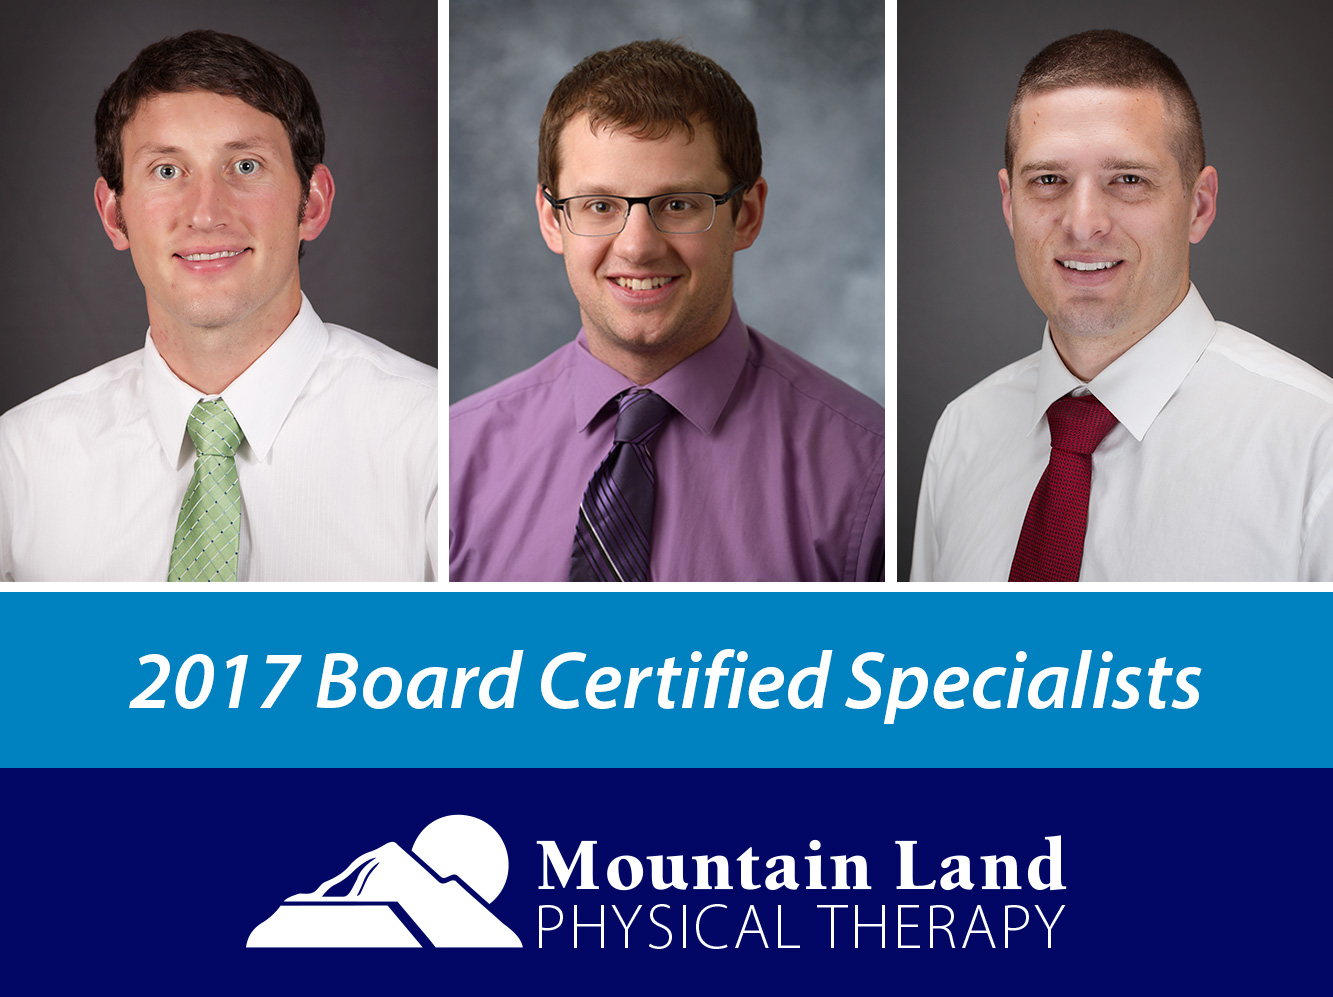 Board Certified Physical Therapists